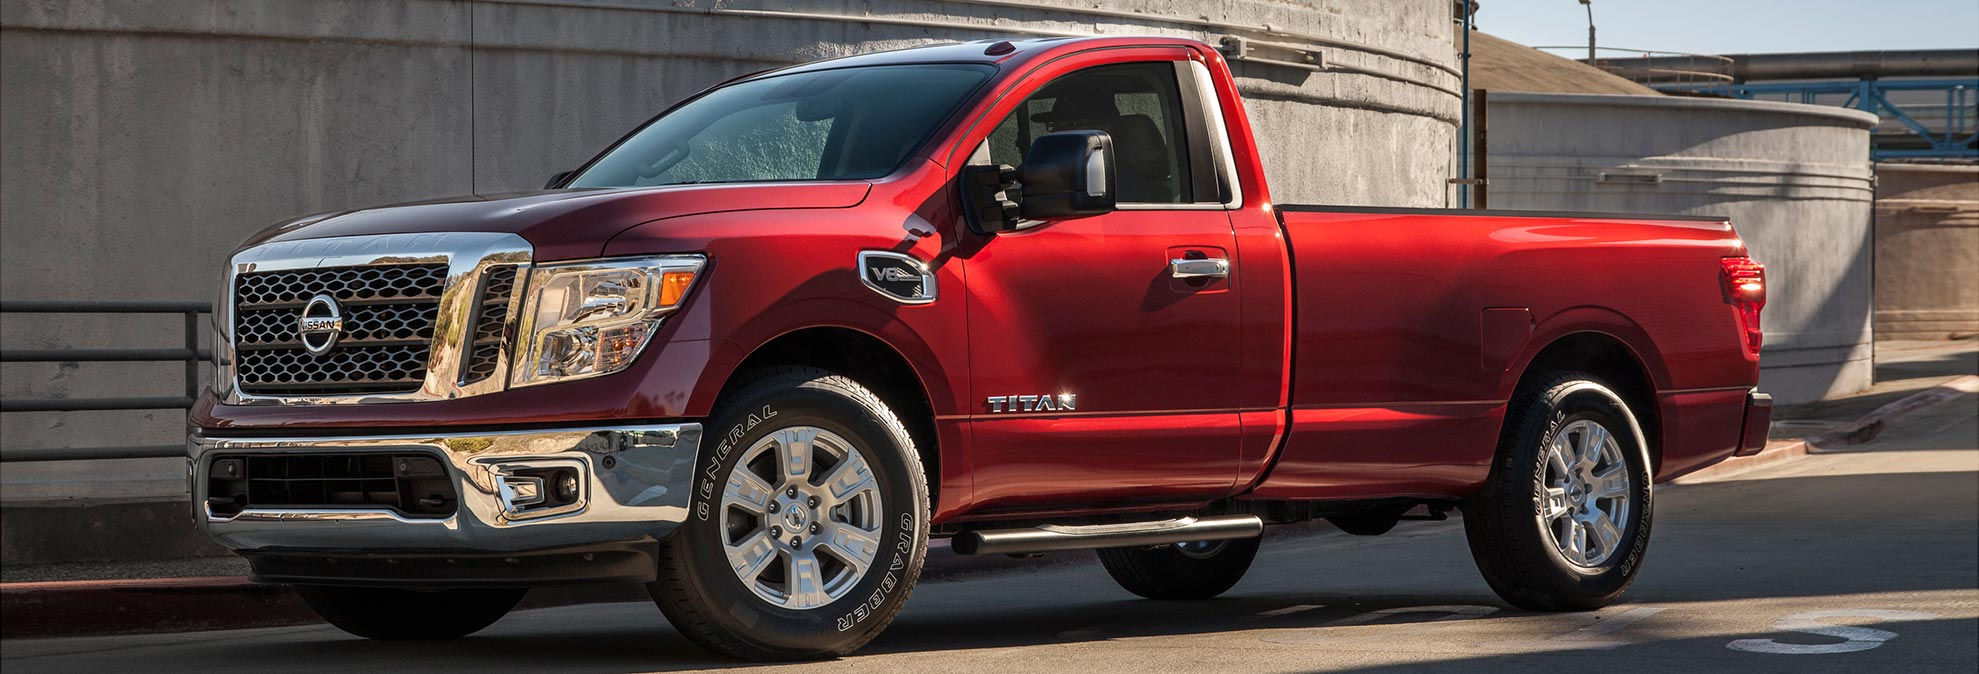 2017 Nissan Titan Goes Lighter Consumer Reports